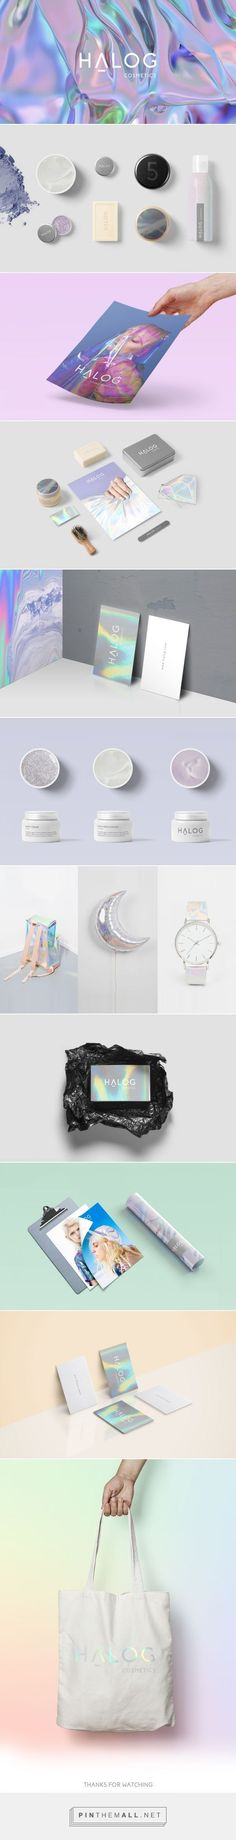 Halog Cosmetics Branding by Katerina Petridou | Fivestar Branding Agency – Design and Branding Agency & Inspiration Gallery ***** More Info: https://tpv.sr/1QoBwQy/